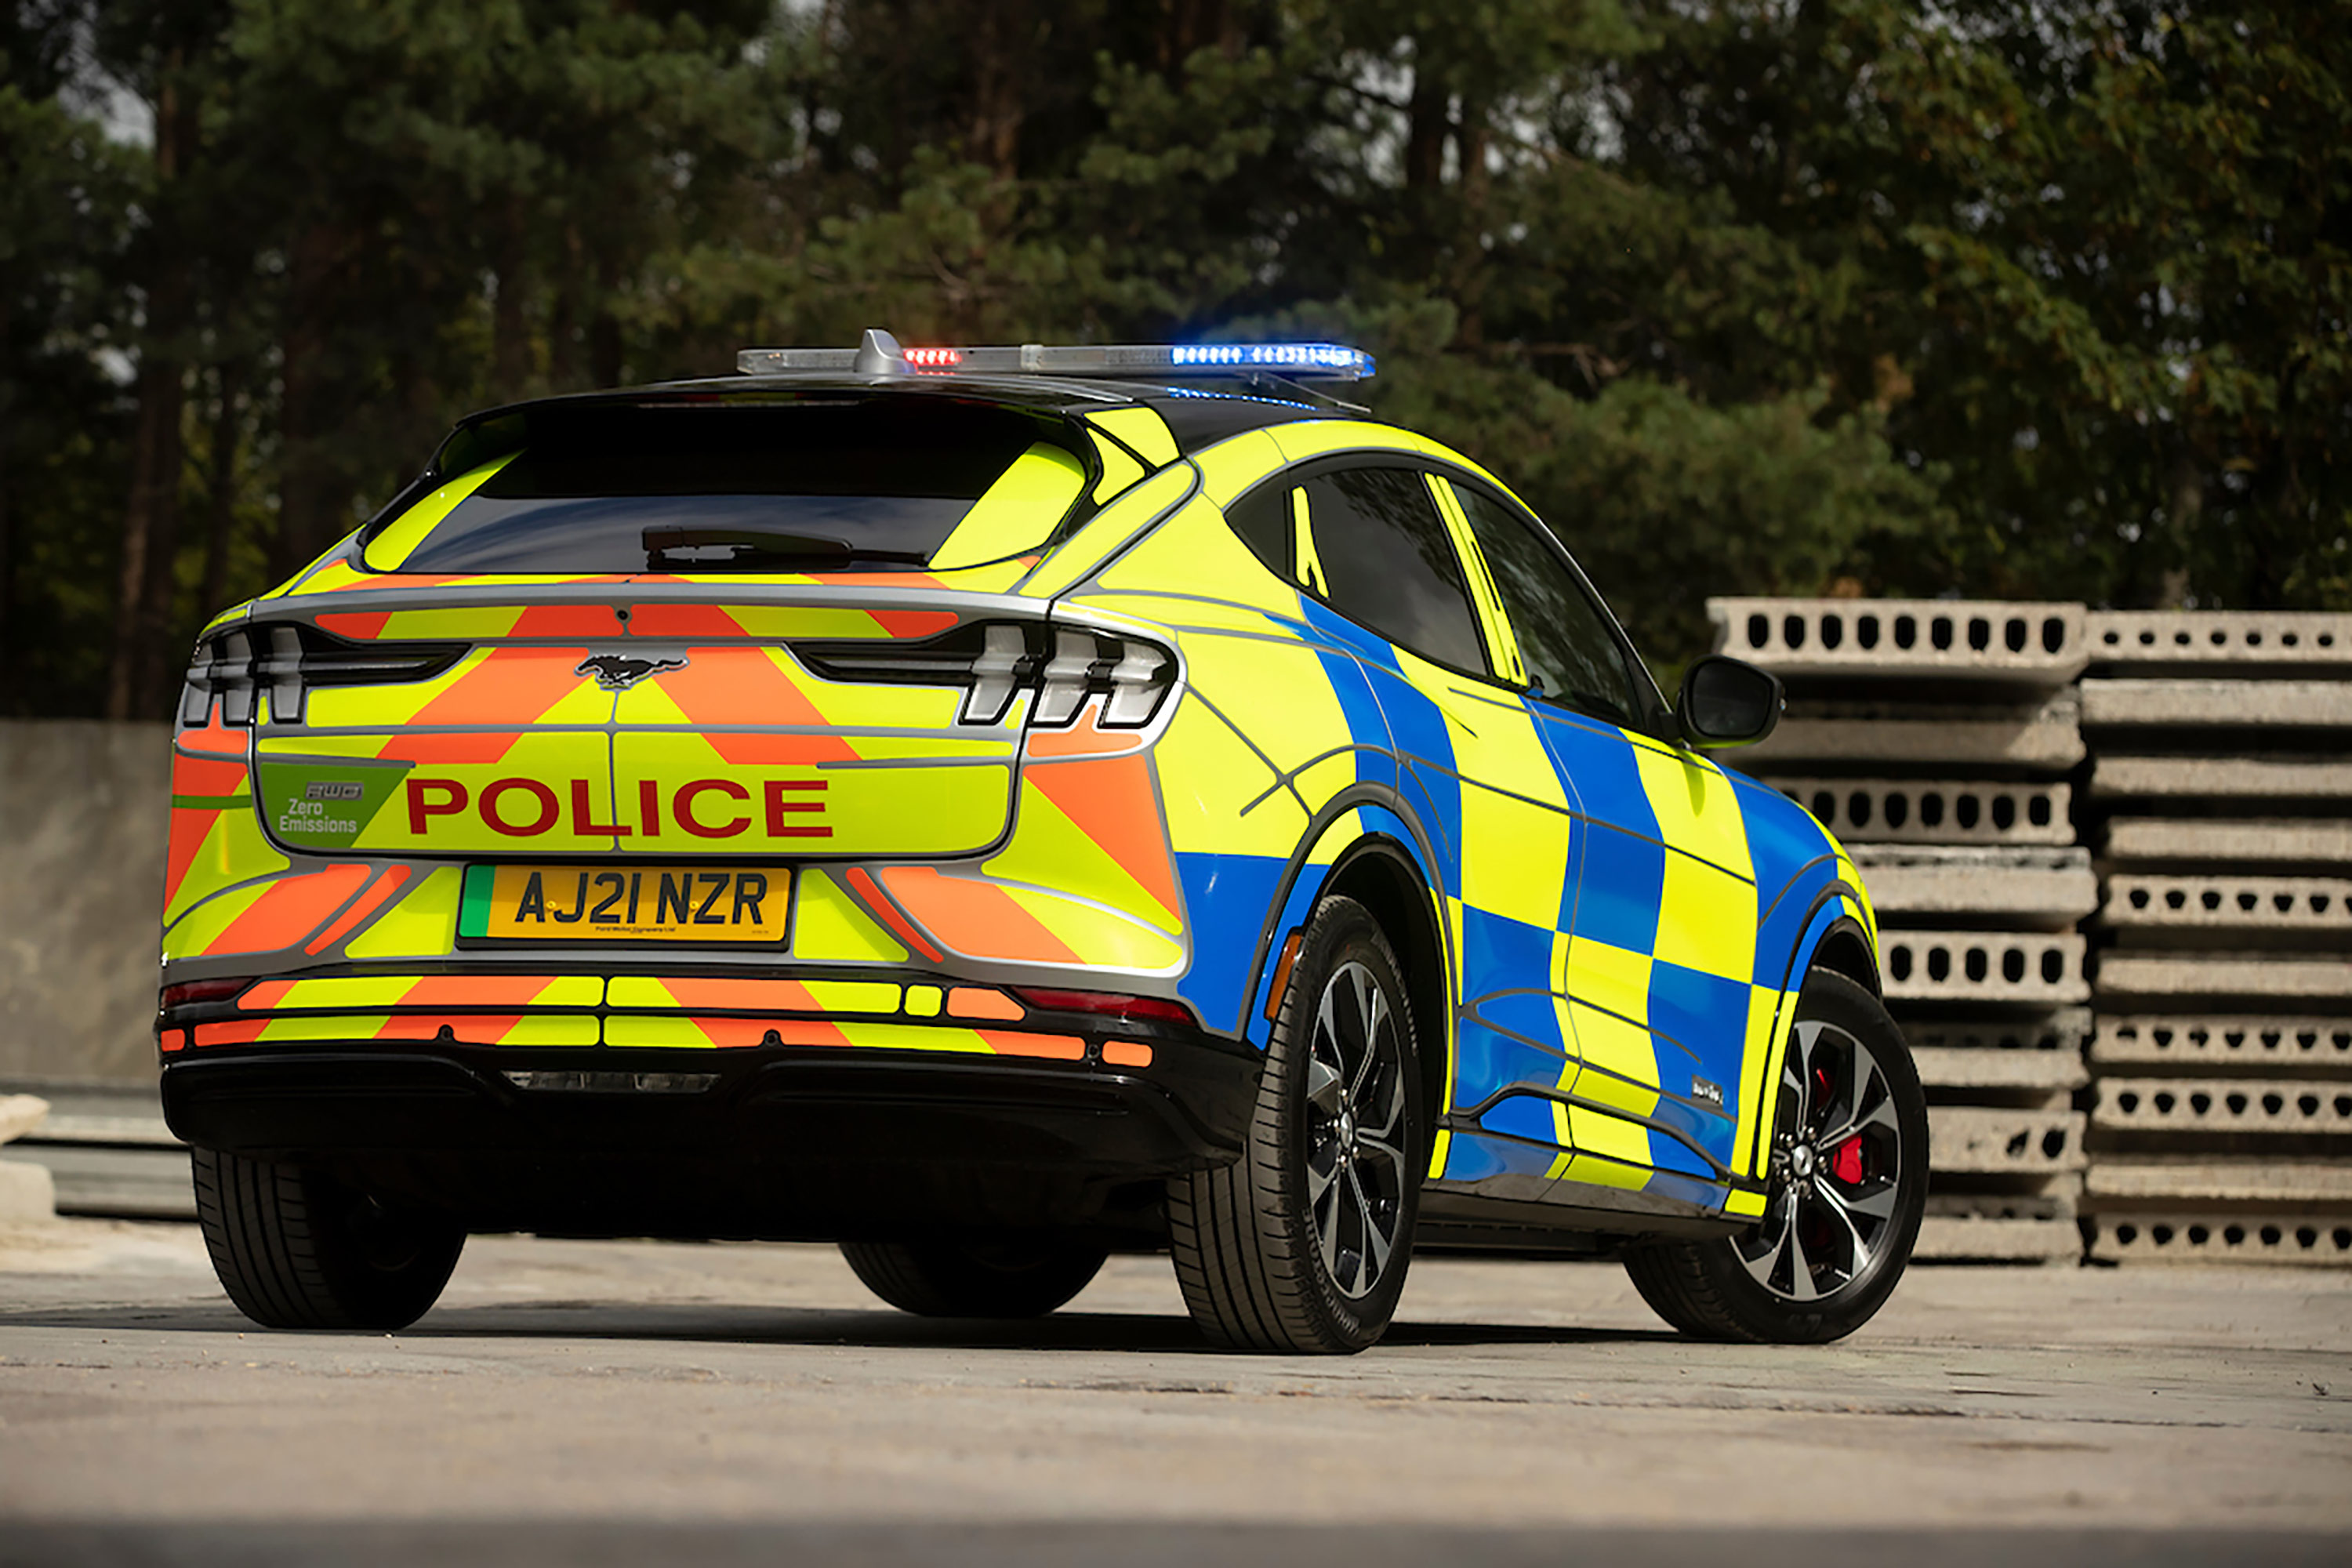 Ford Mustang Mach-E UK Police Car Concept - rear